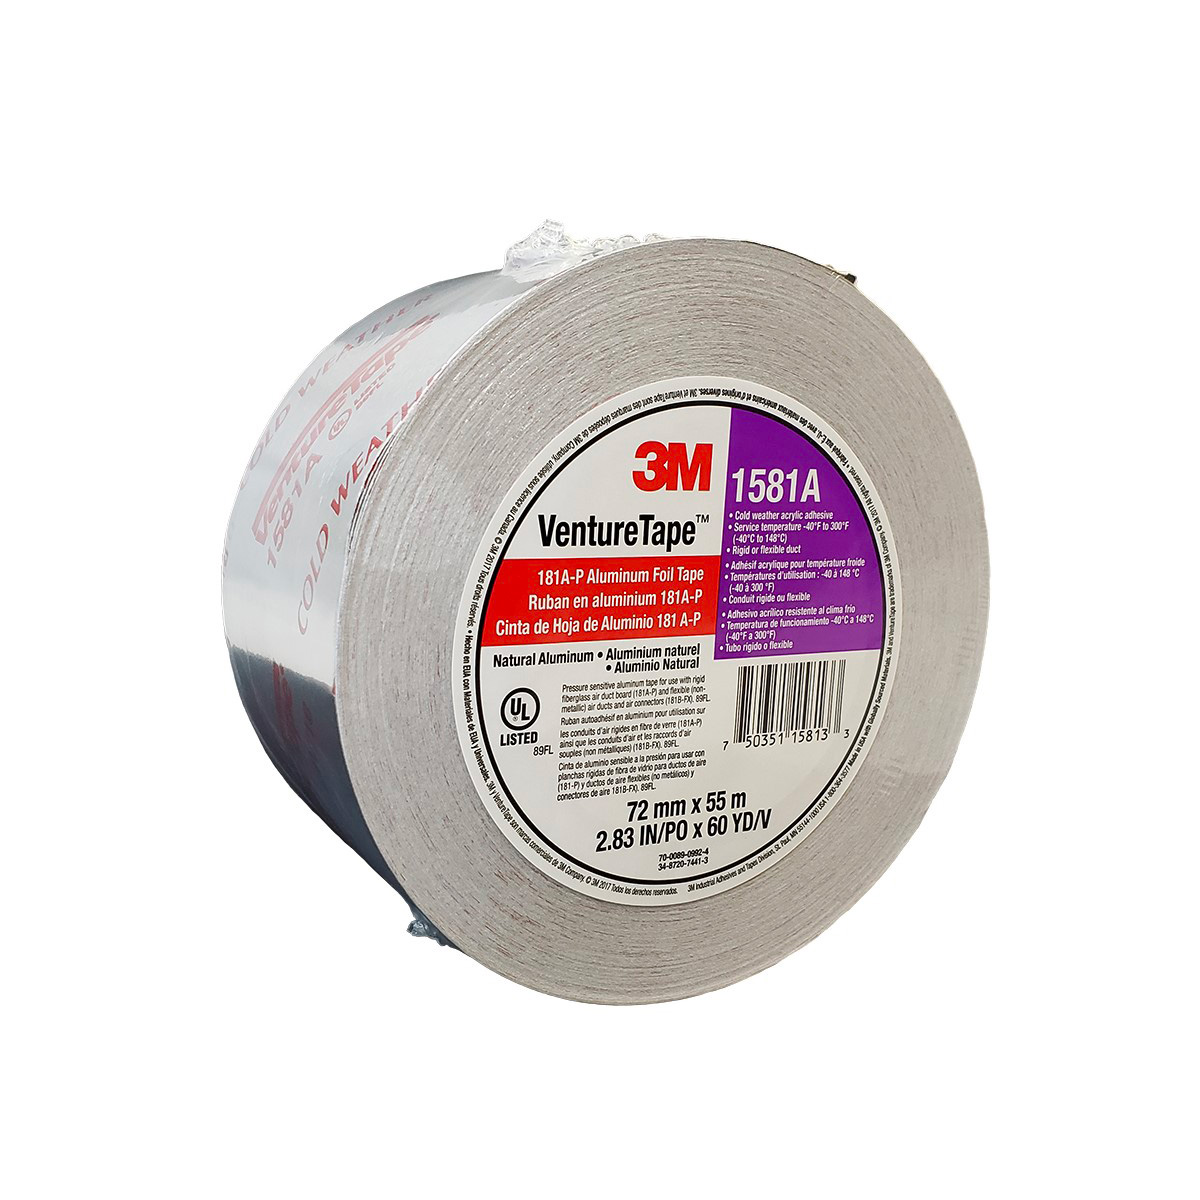 3m Venture Tape Ul181a P Aluminum Foil Tape 1581a J R Products Inc